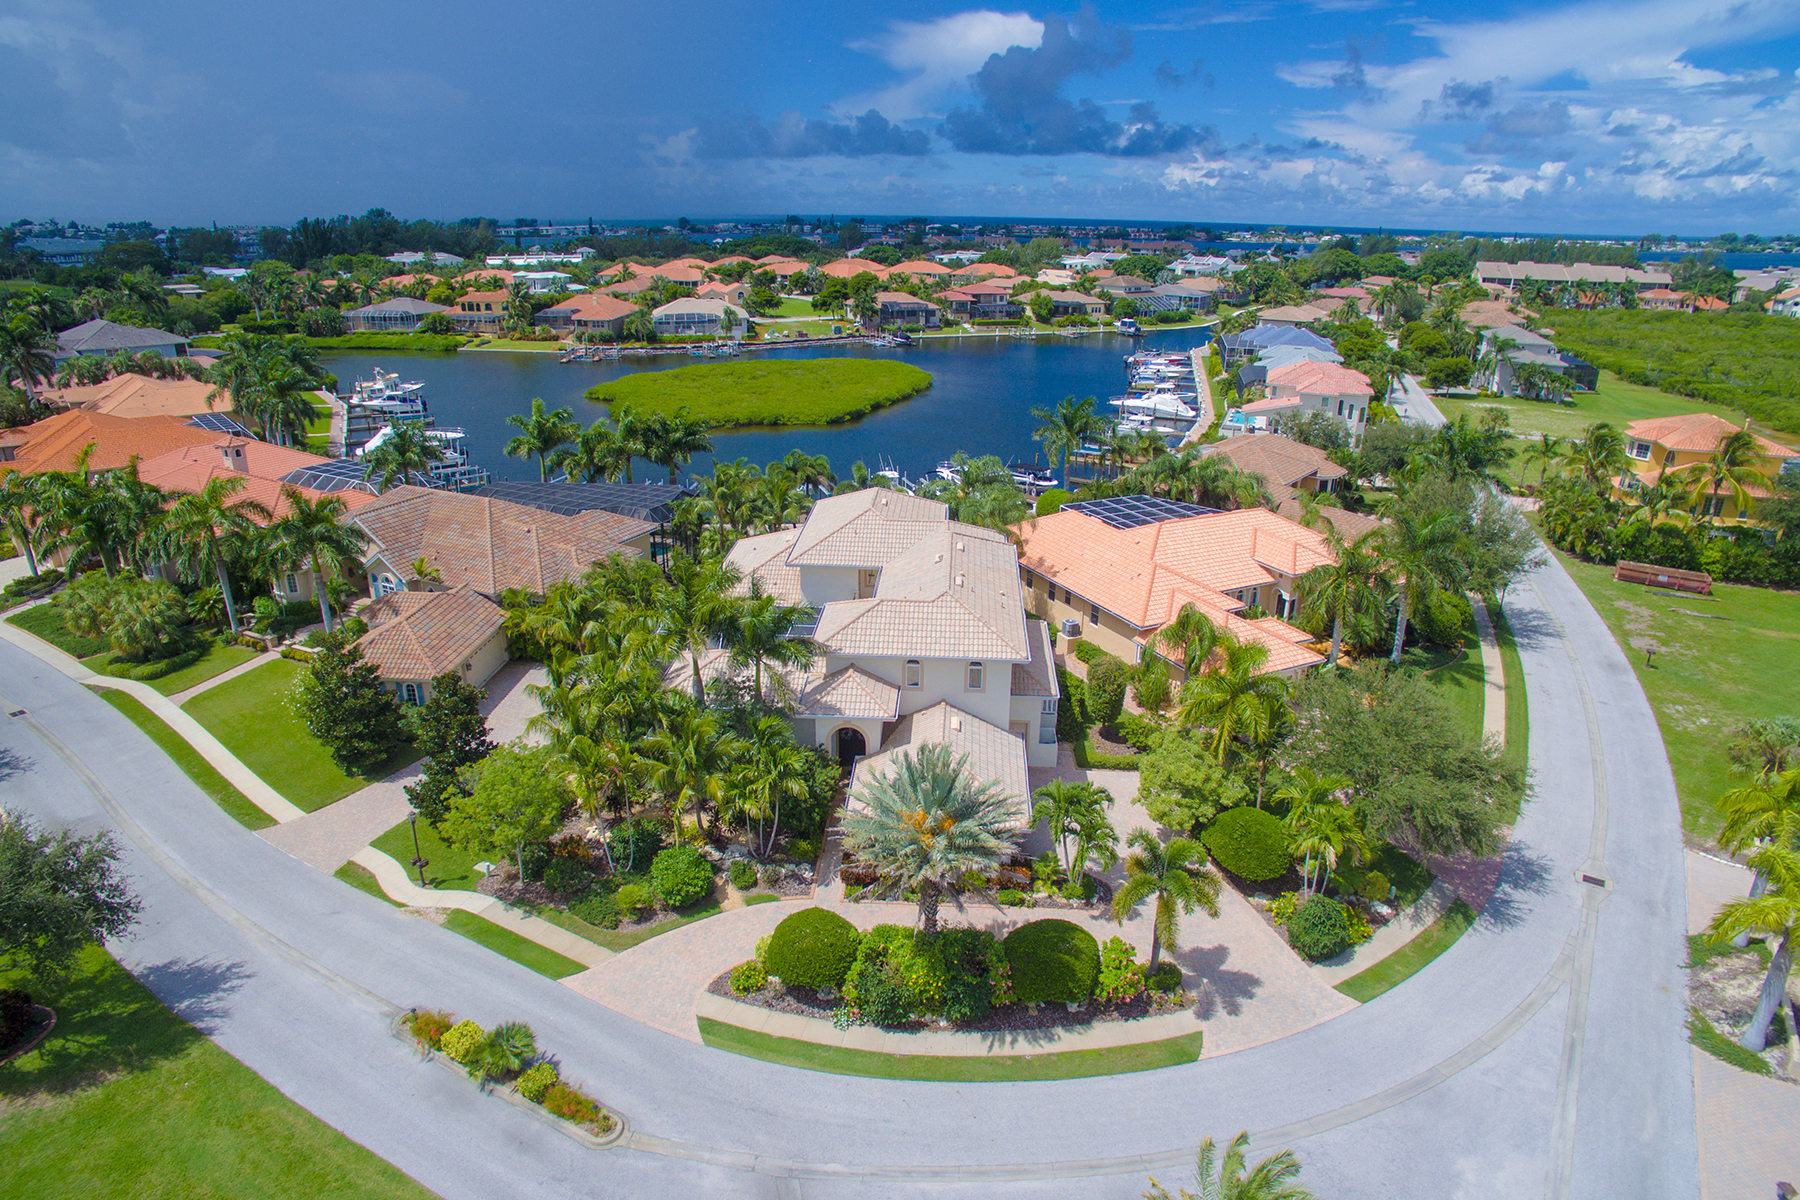 Maison unifamiliale pour l Vente à HARBOUR LANDINGS ESTATES 4004 Commodore Blvd Cortez, Florida, 34215 États-Unis